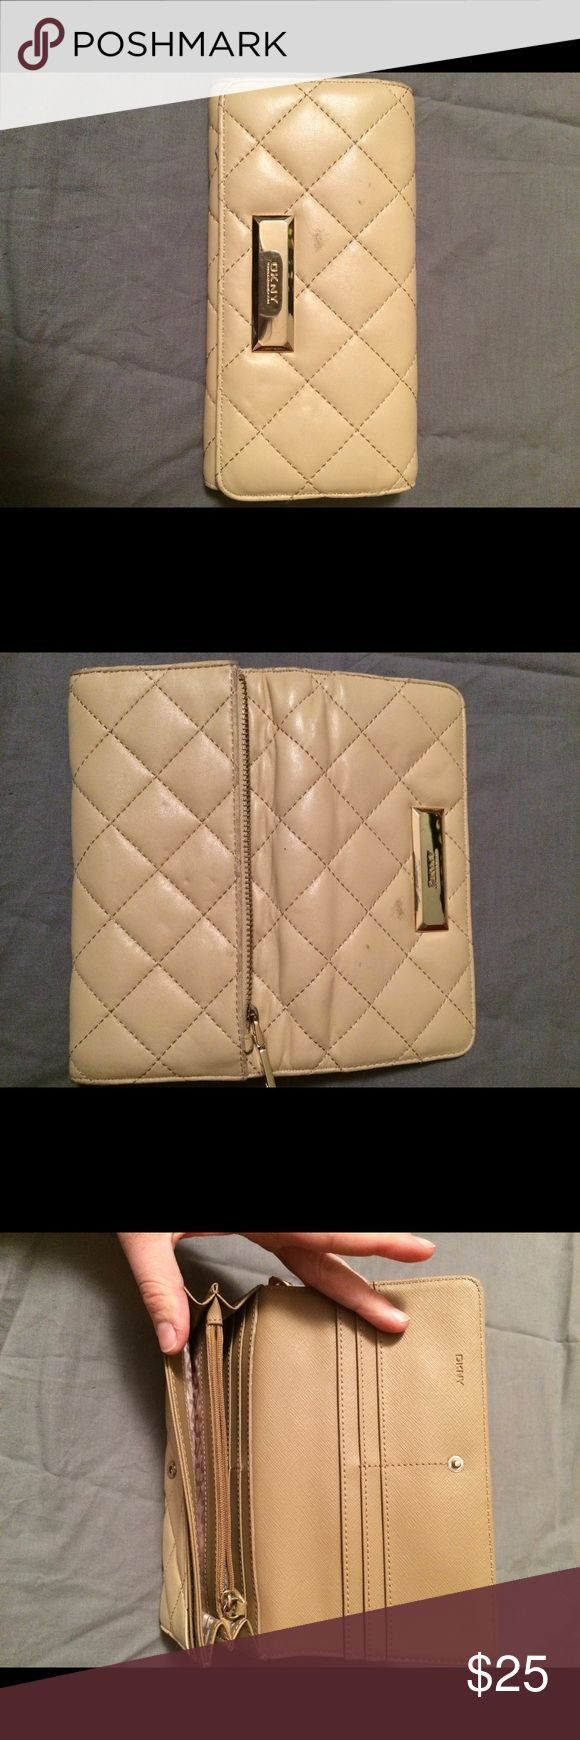 Selling this DKNY leather quilted wallet on Poshmark! My username is: jkm5017. #shopmycloset #poshmark #fashion #shopping #style #forsale #Handbags